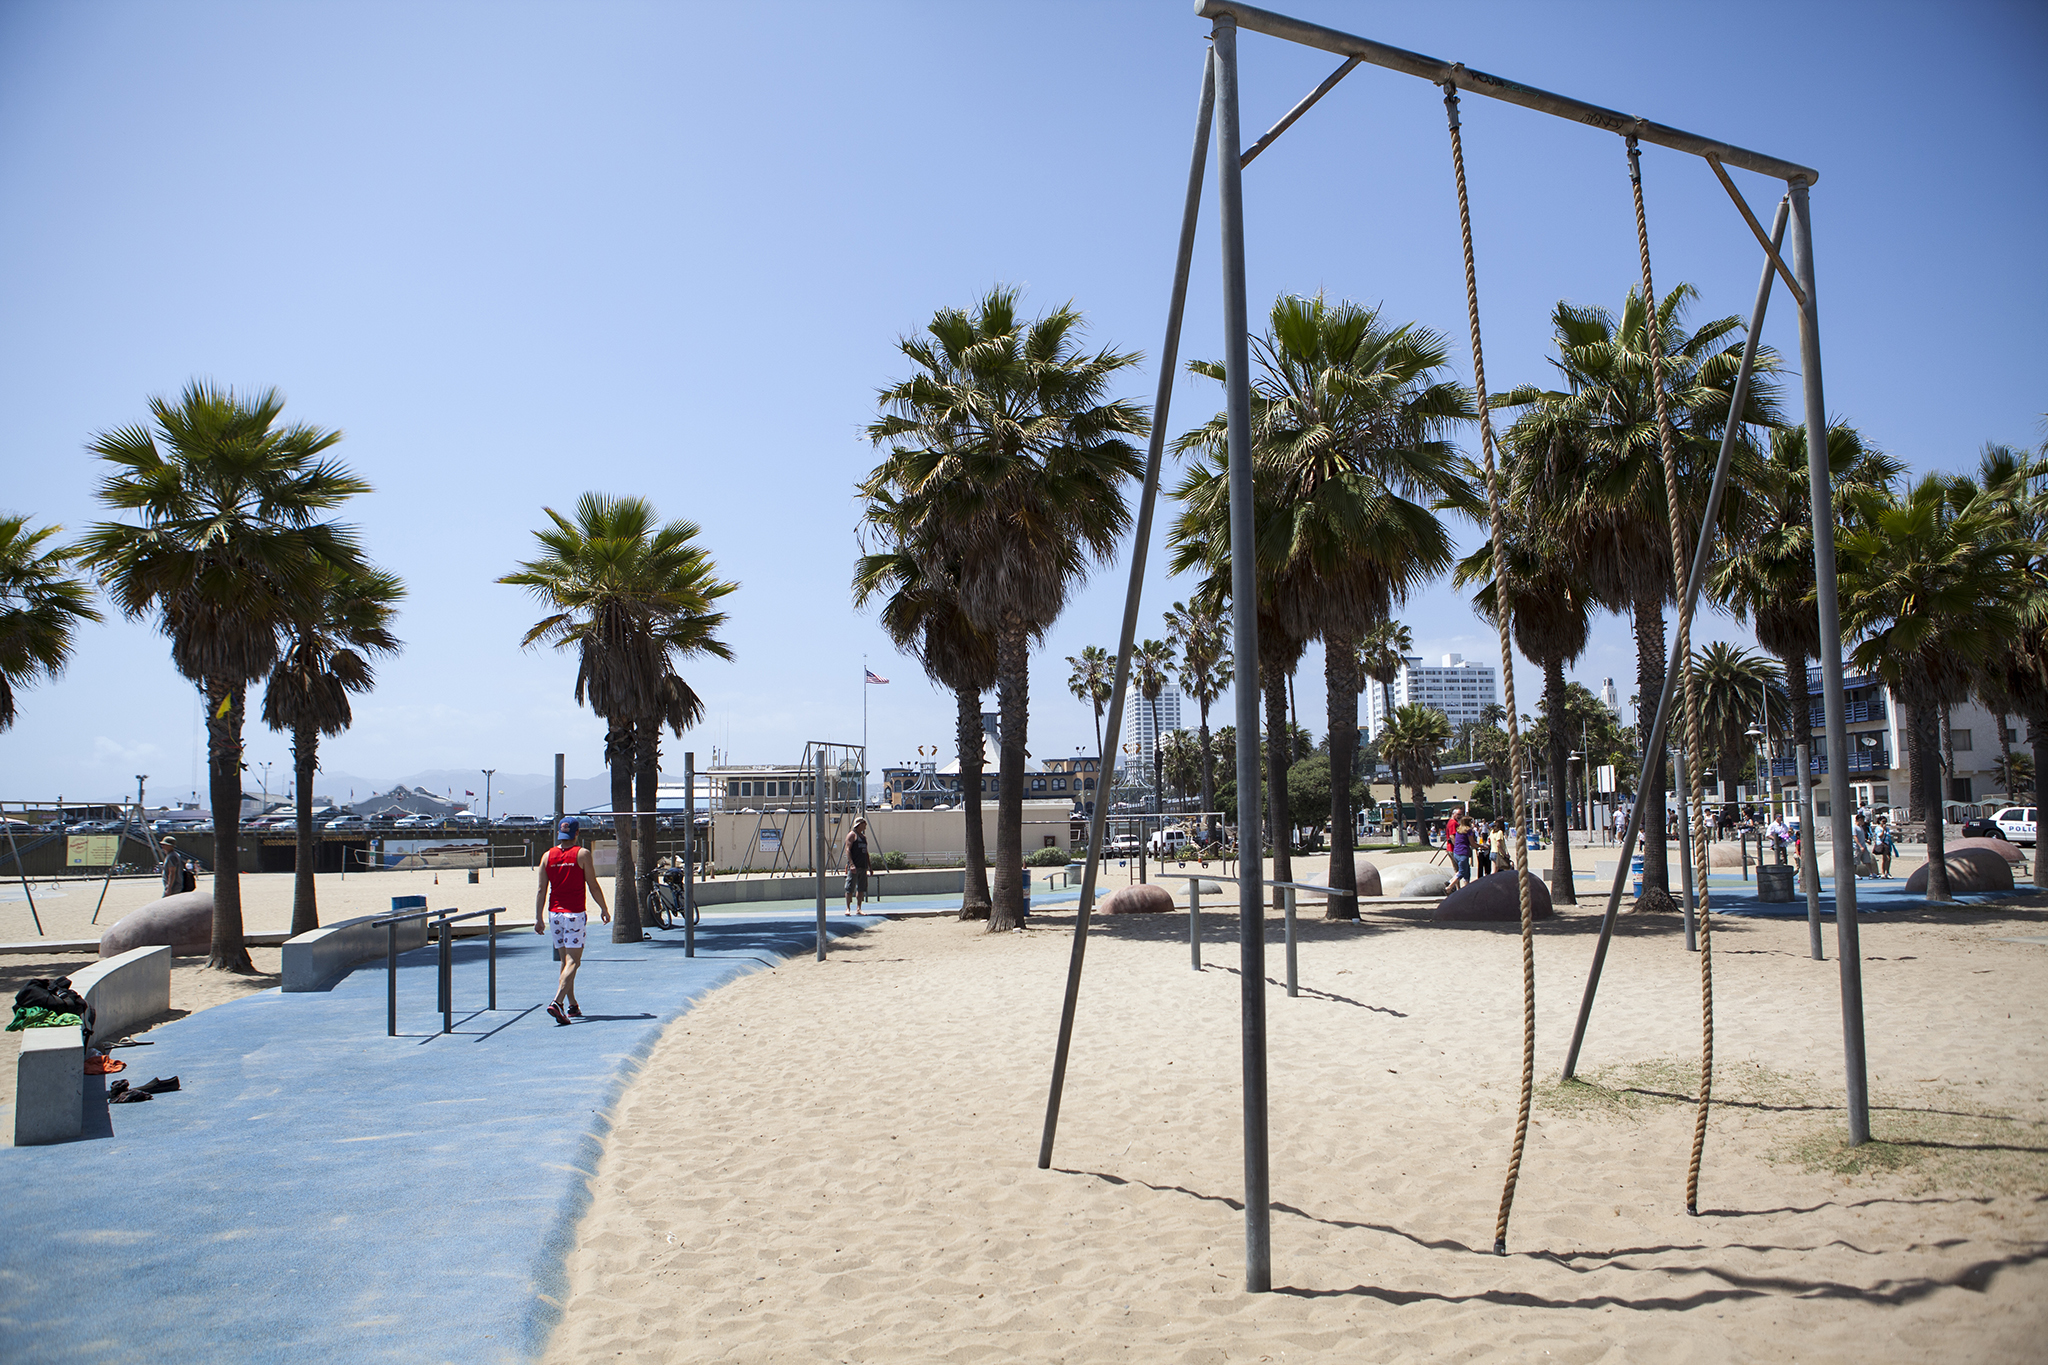 Flaunt your skills at SaMo's swings, rings and ropes